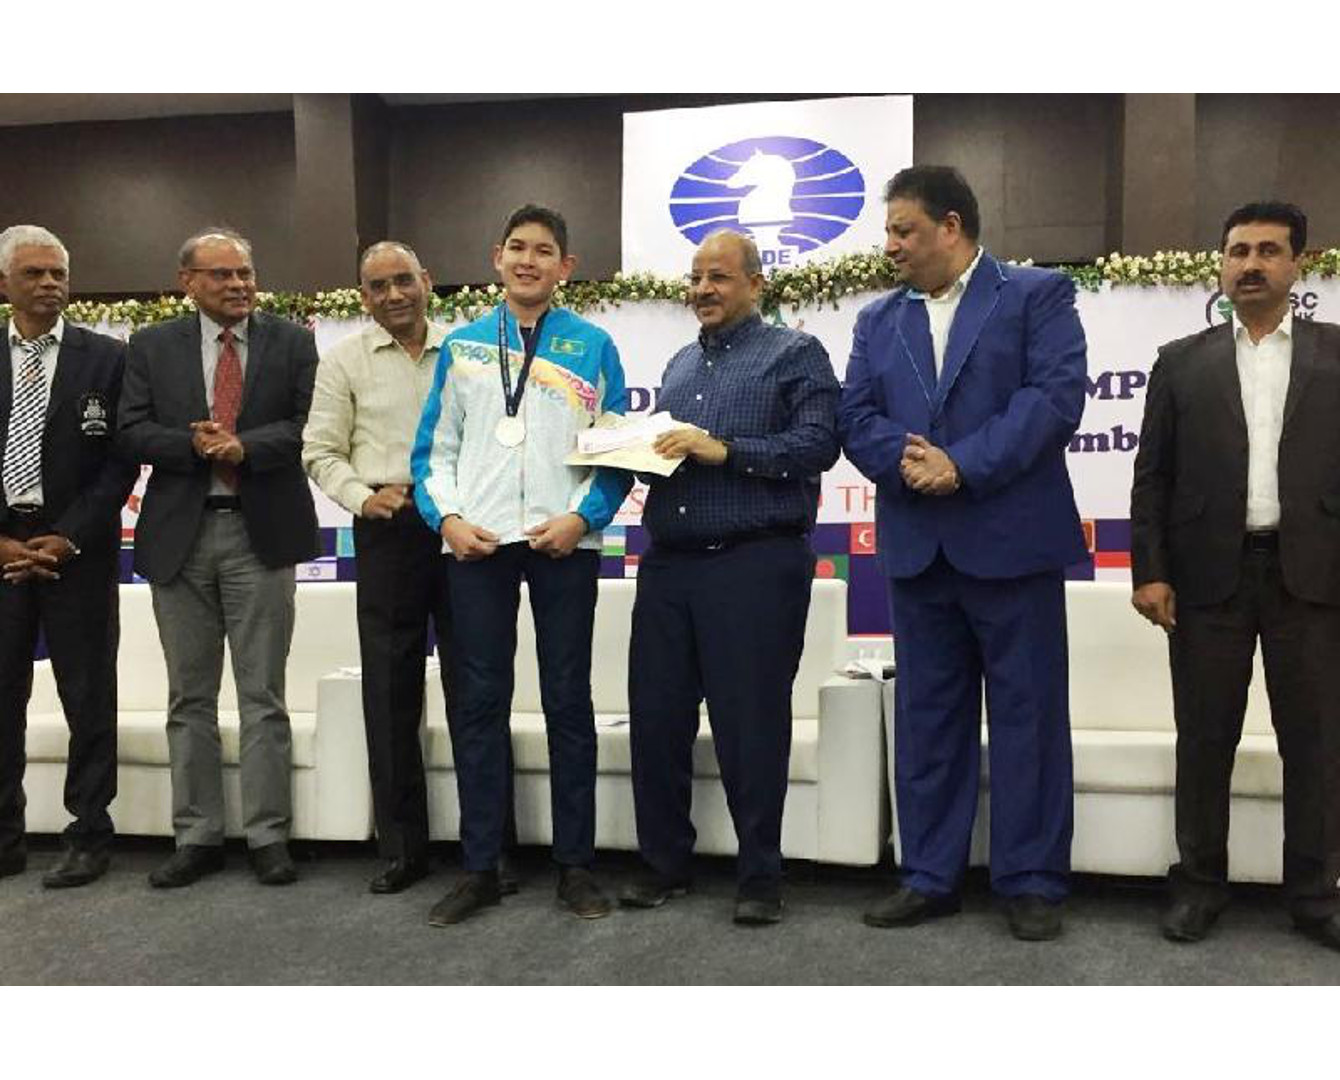 Kazakh chess player grabs silver medal at Olympiad in India